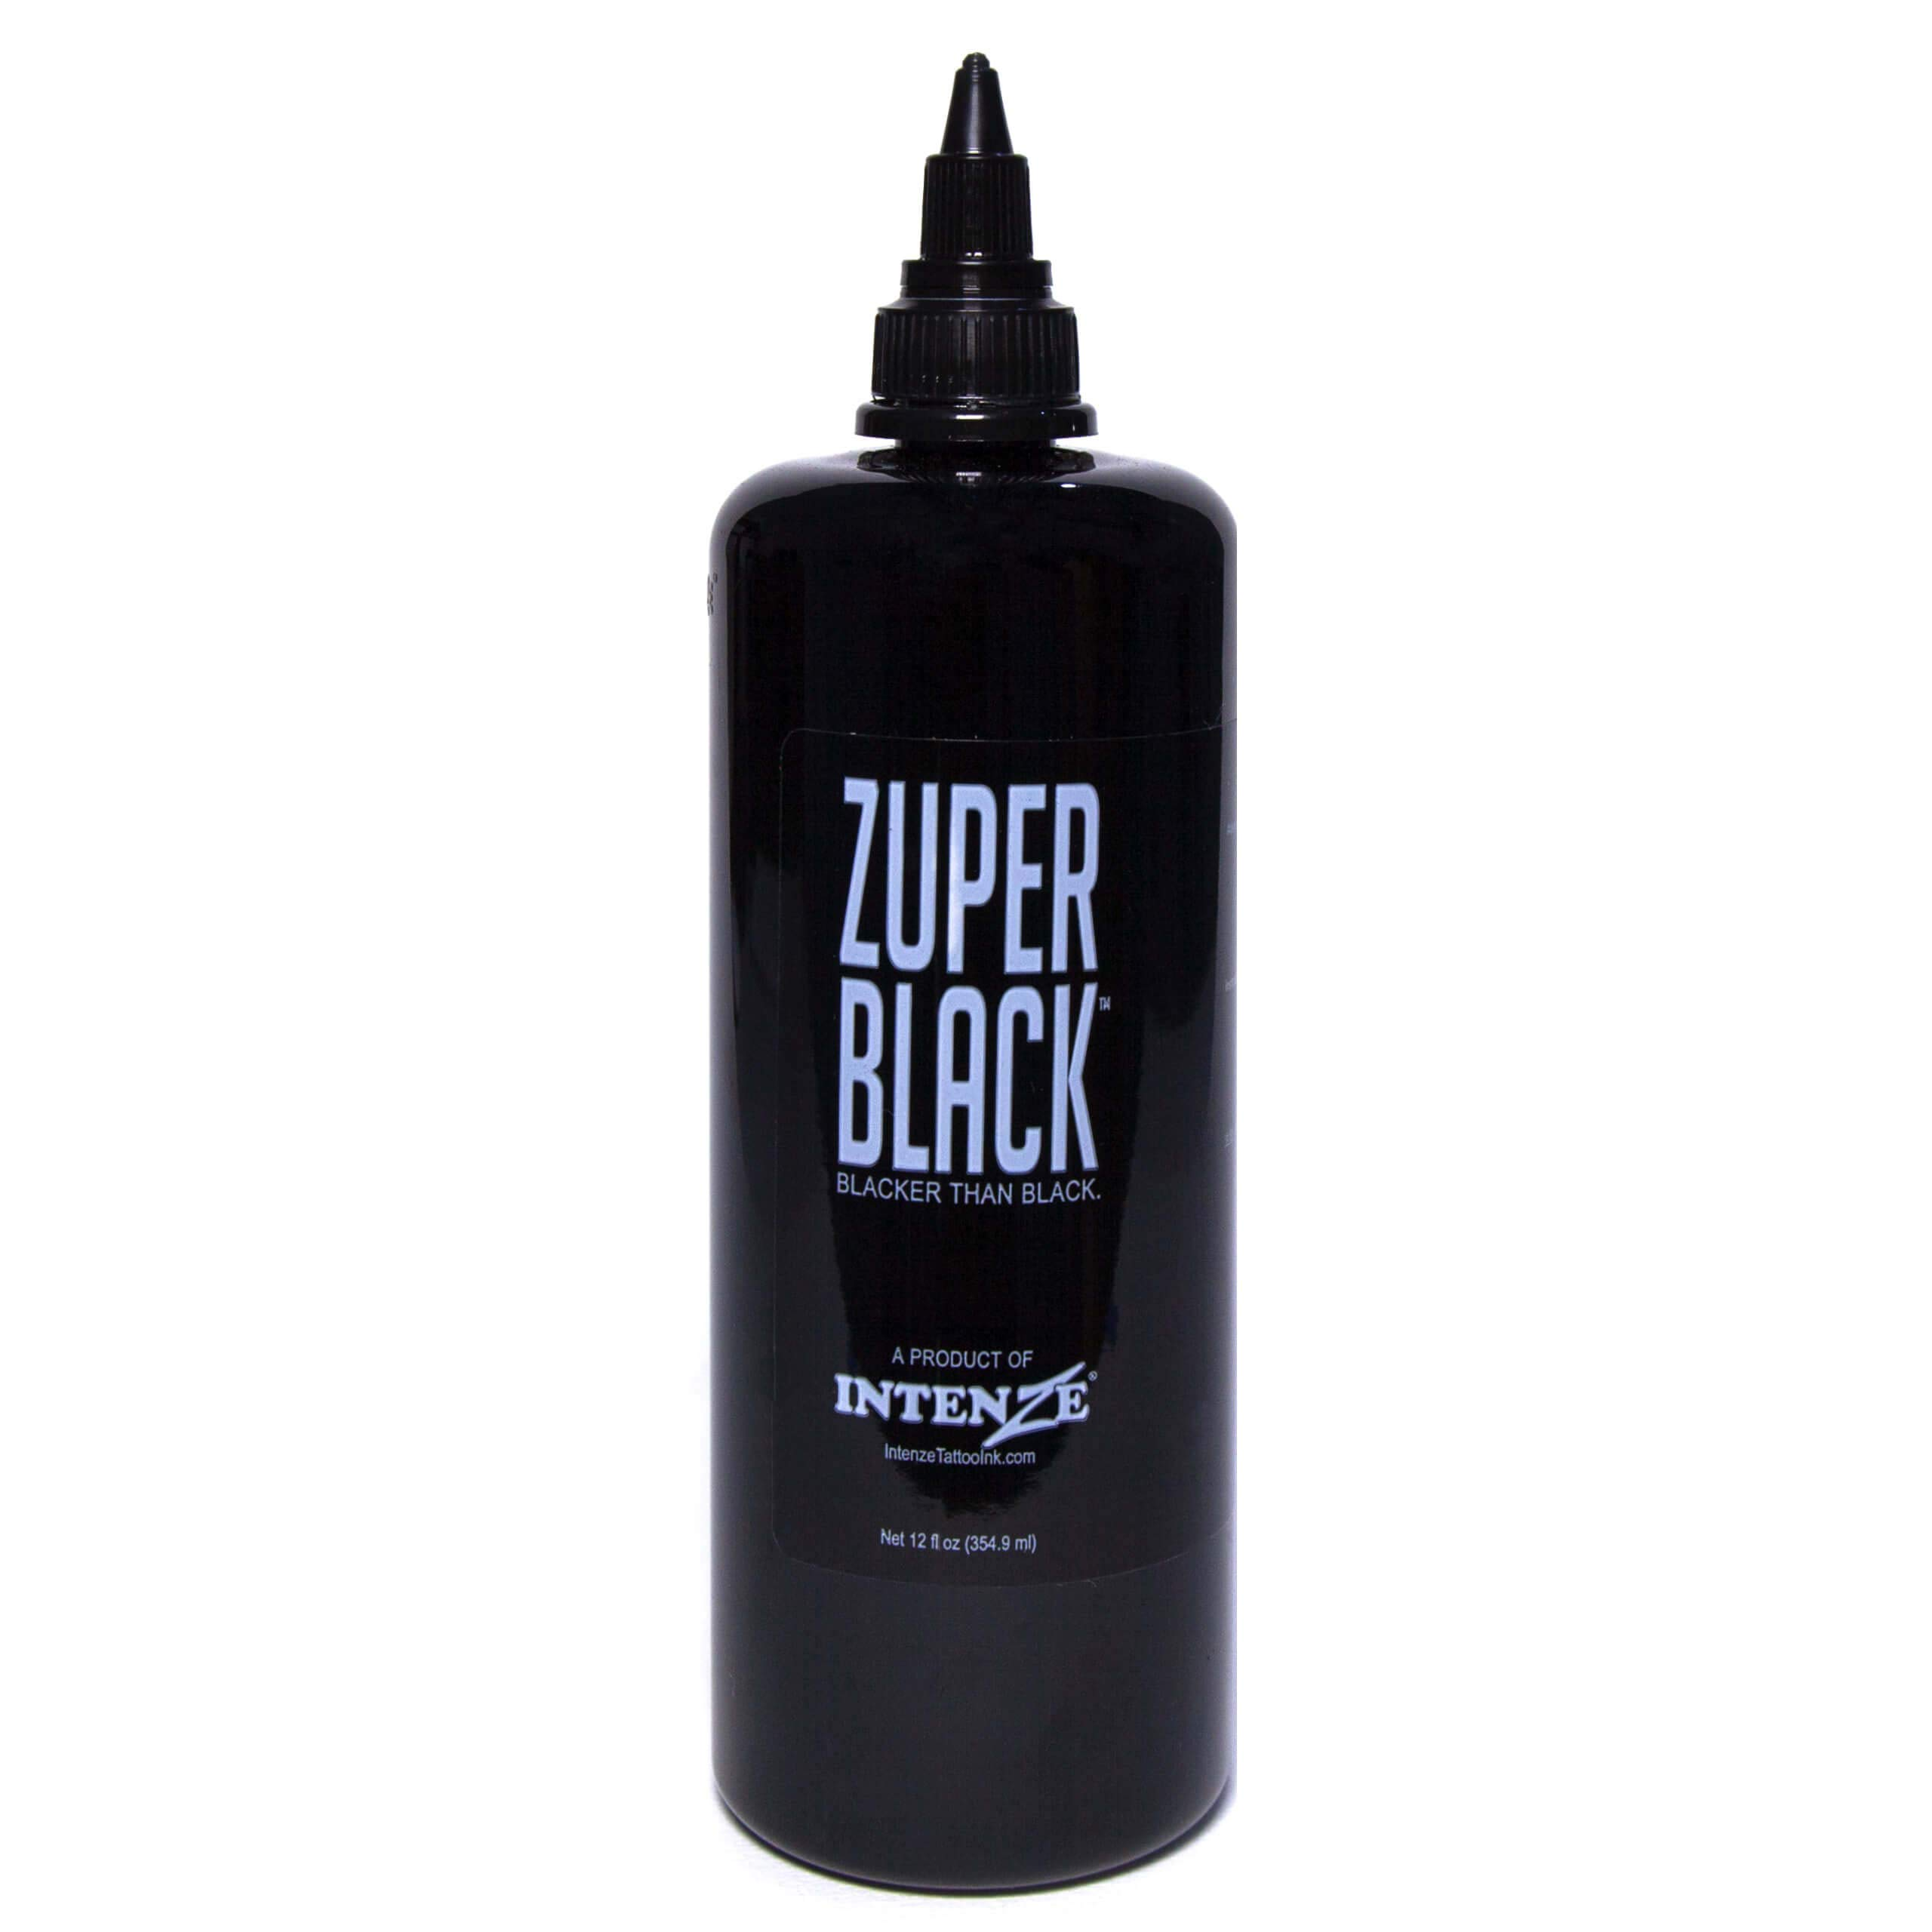 Intenze Professional Tattoo Ink Zuper Black 12 oz by Intenze